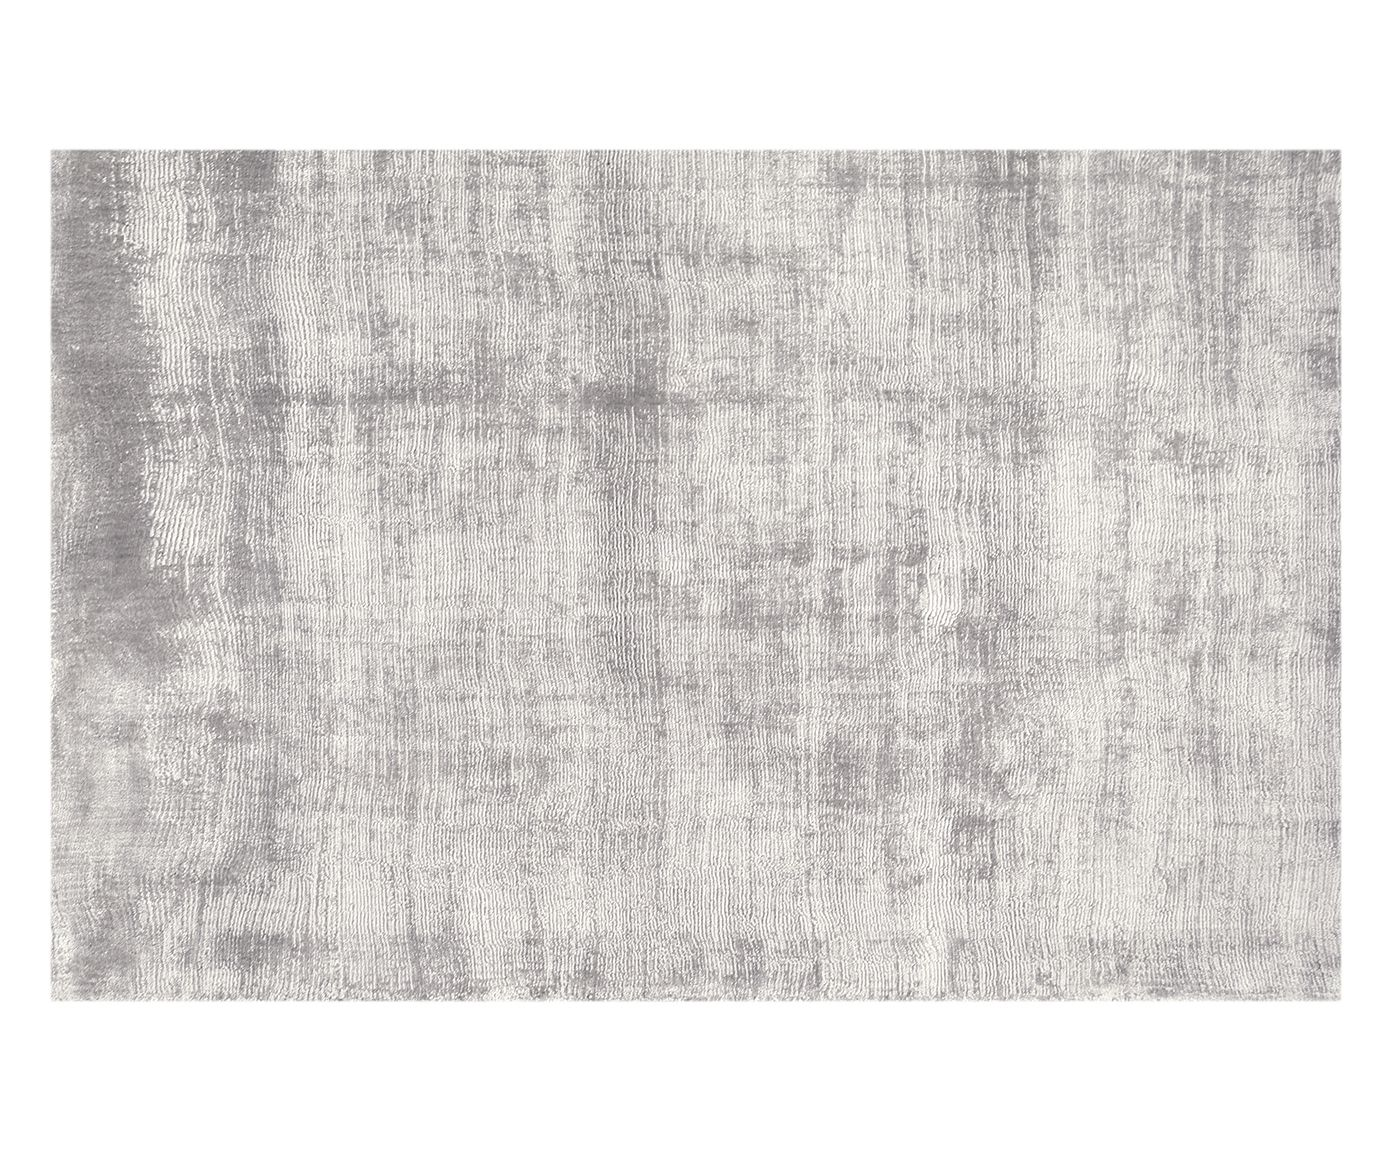 Tapete Indiano Seaburry Cinza - 150X200cm | Westwing.com.br